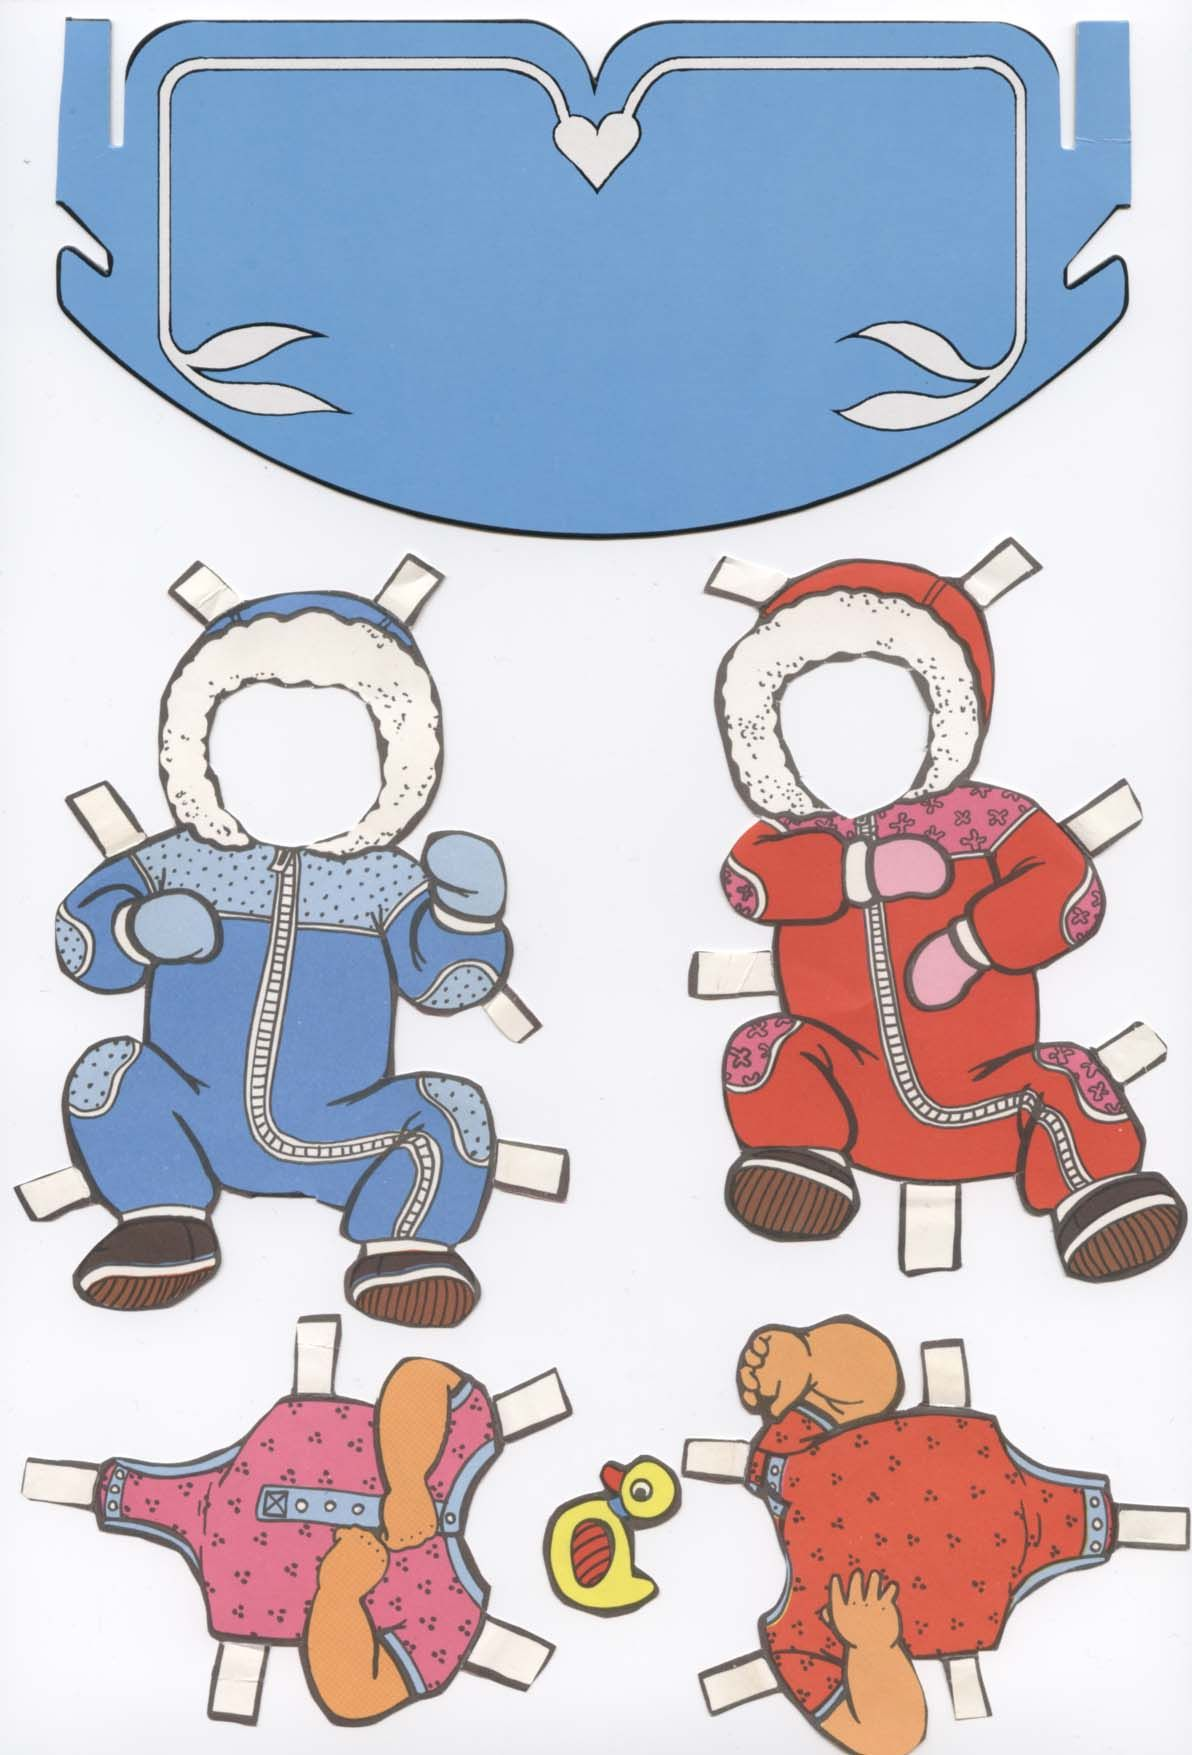 My old paperdolls - Twins with furniture